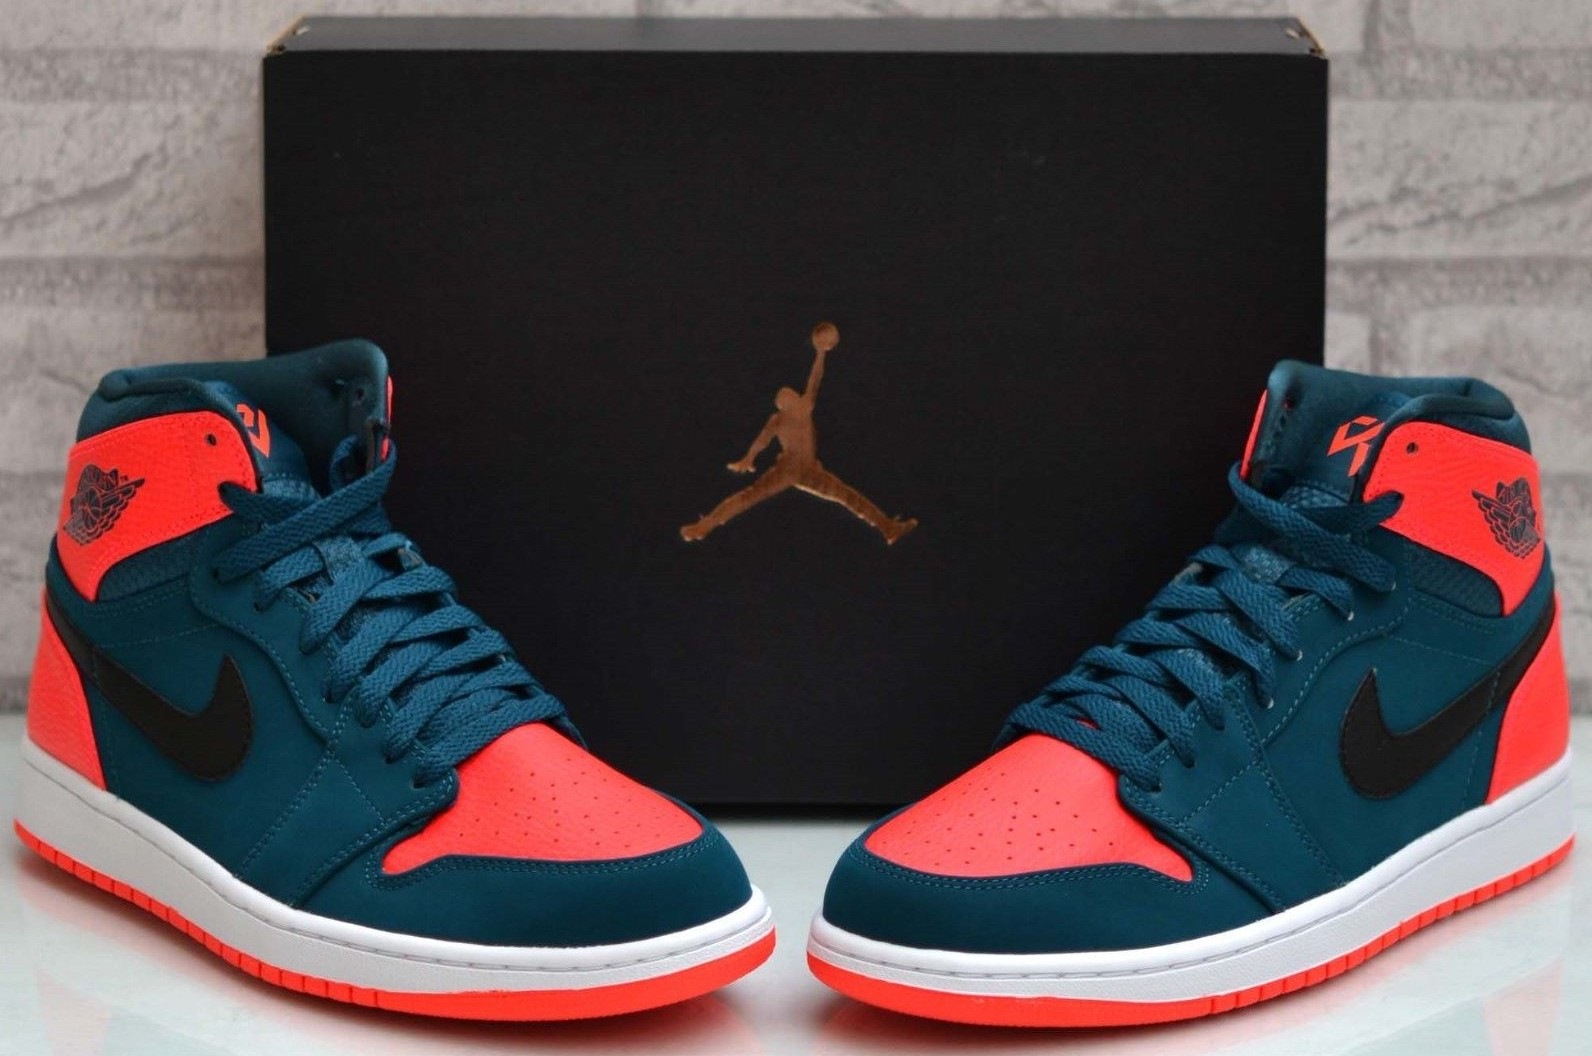 russell westbrook jordan shoes 2012 sale up to 62 discounts